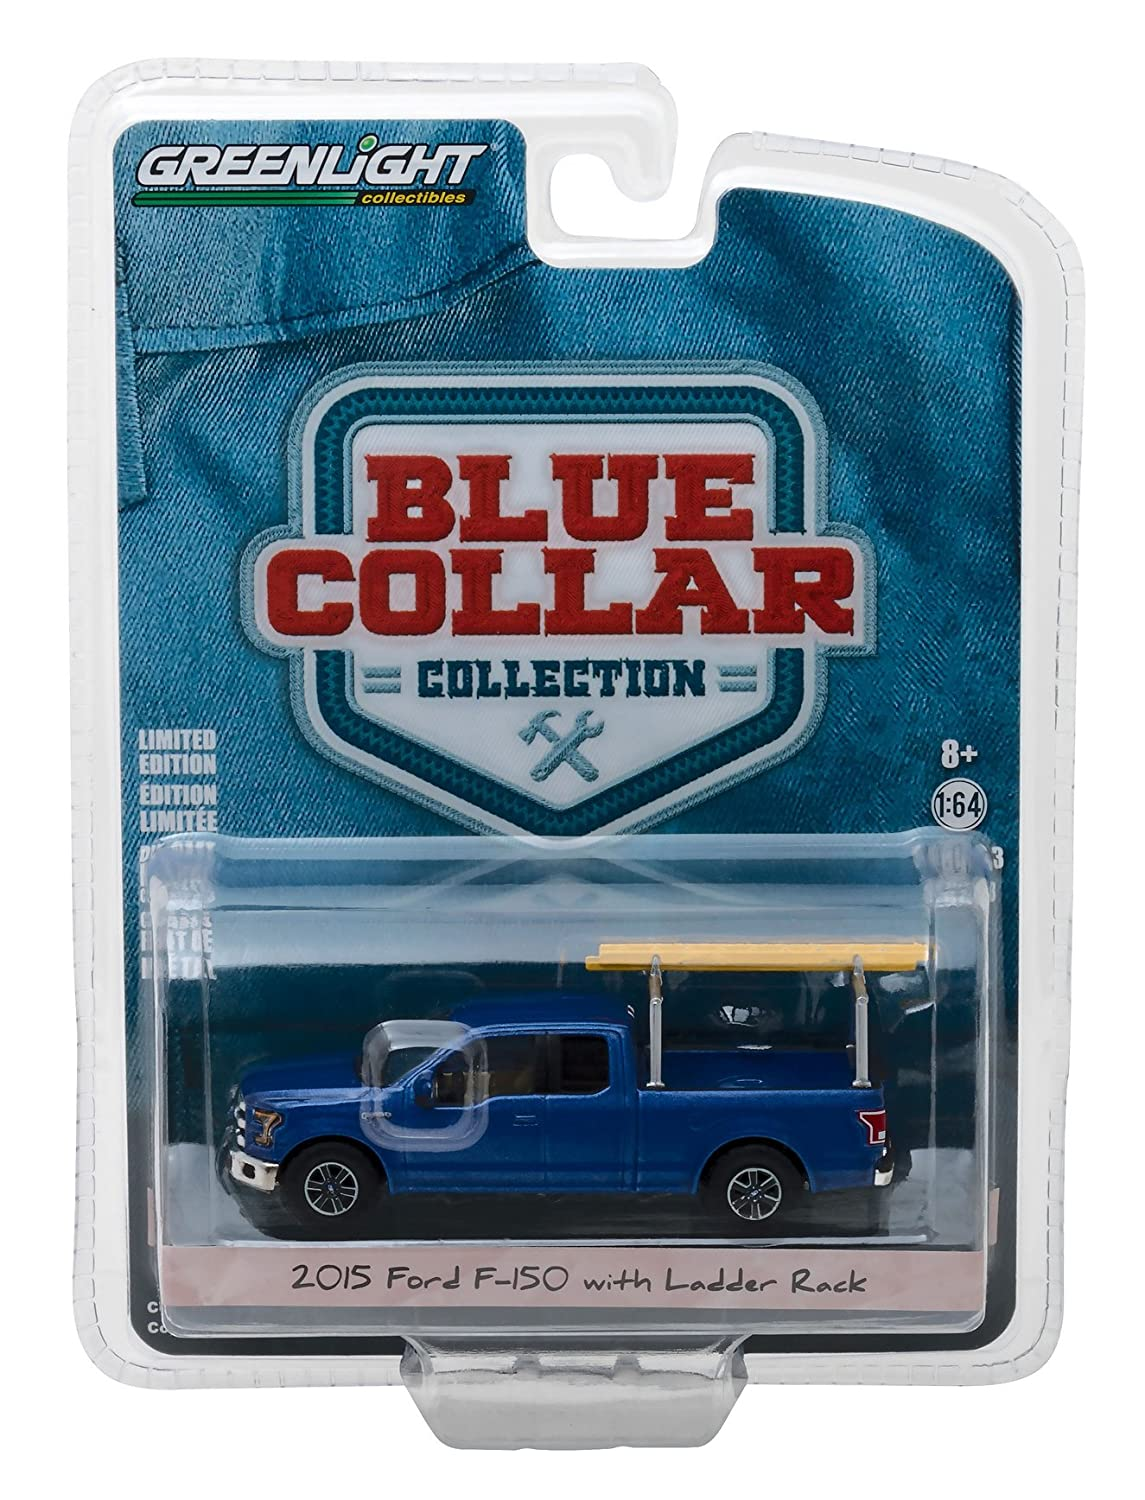 2015 Ford F 150 Blue Pickup Truck with Ladder Rack Blue Collar Collection Series 3 1 64 Diecast Model Car by Greenlight 35080 E